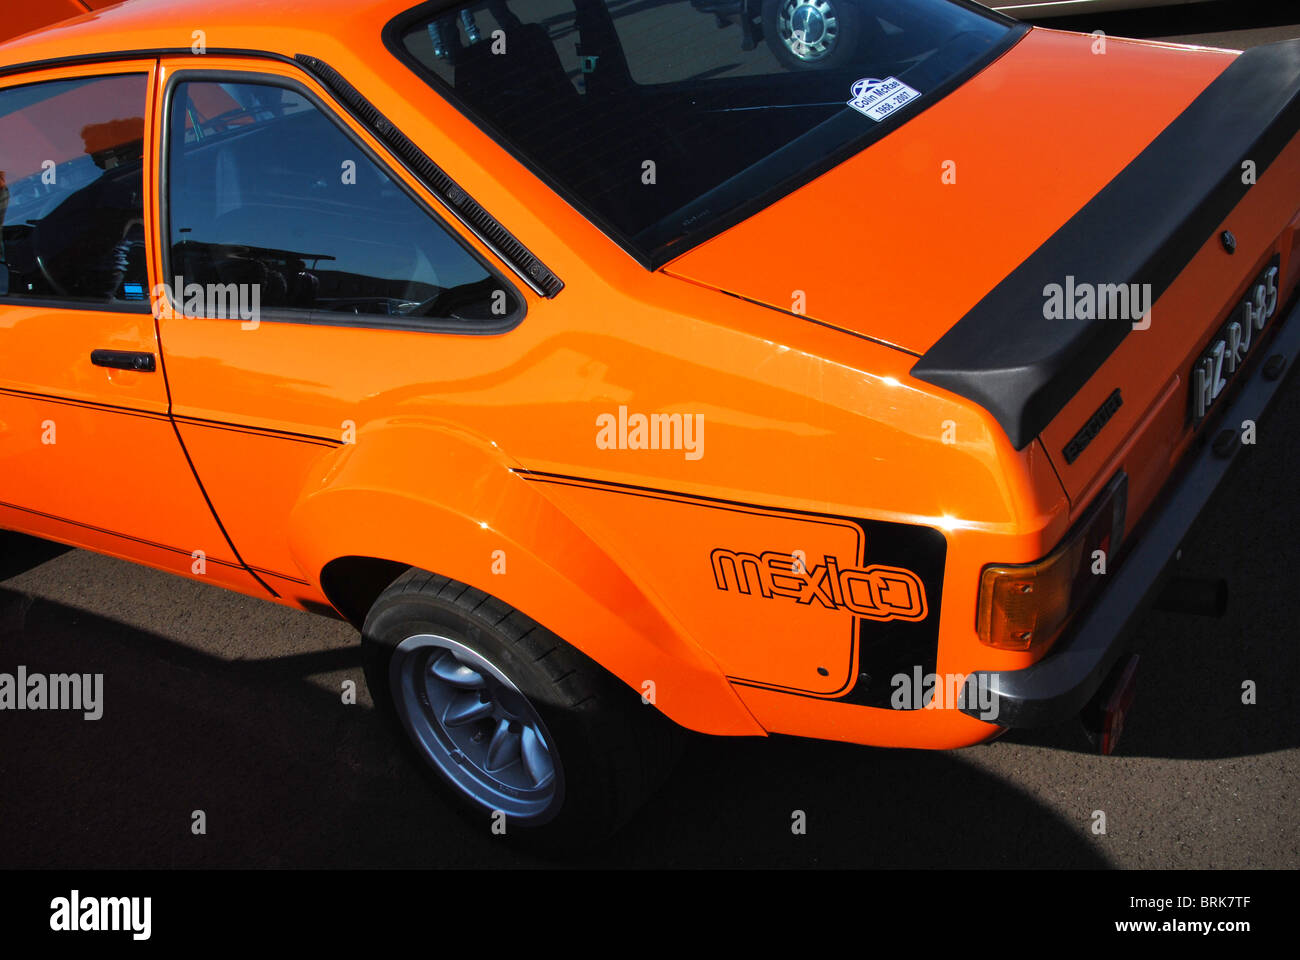 Ford Escort Mexico Mk2 side view